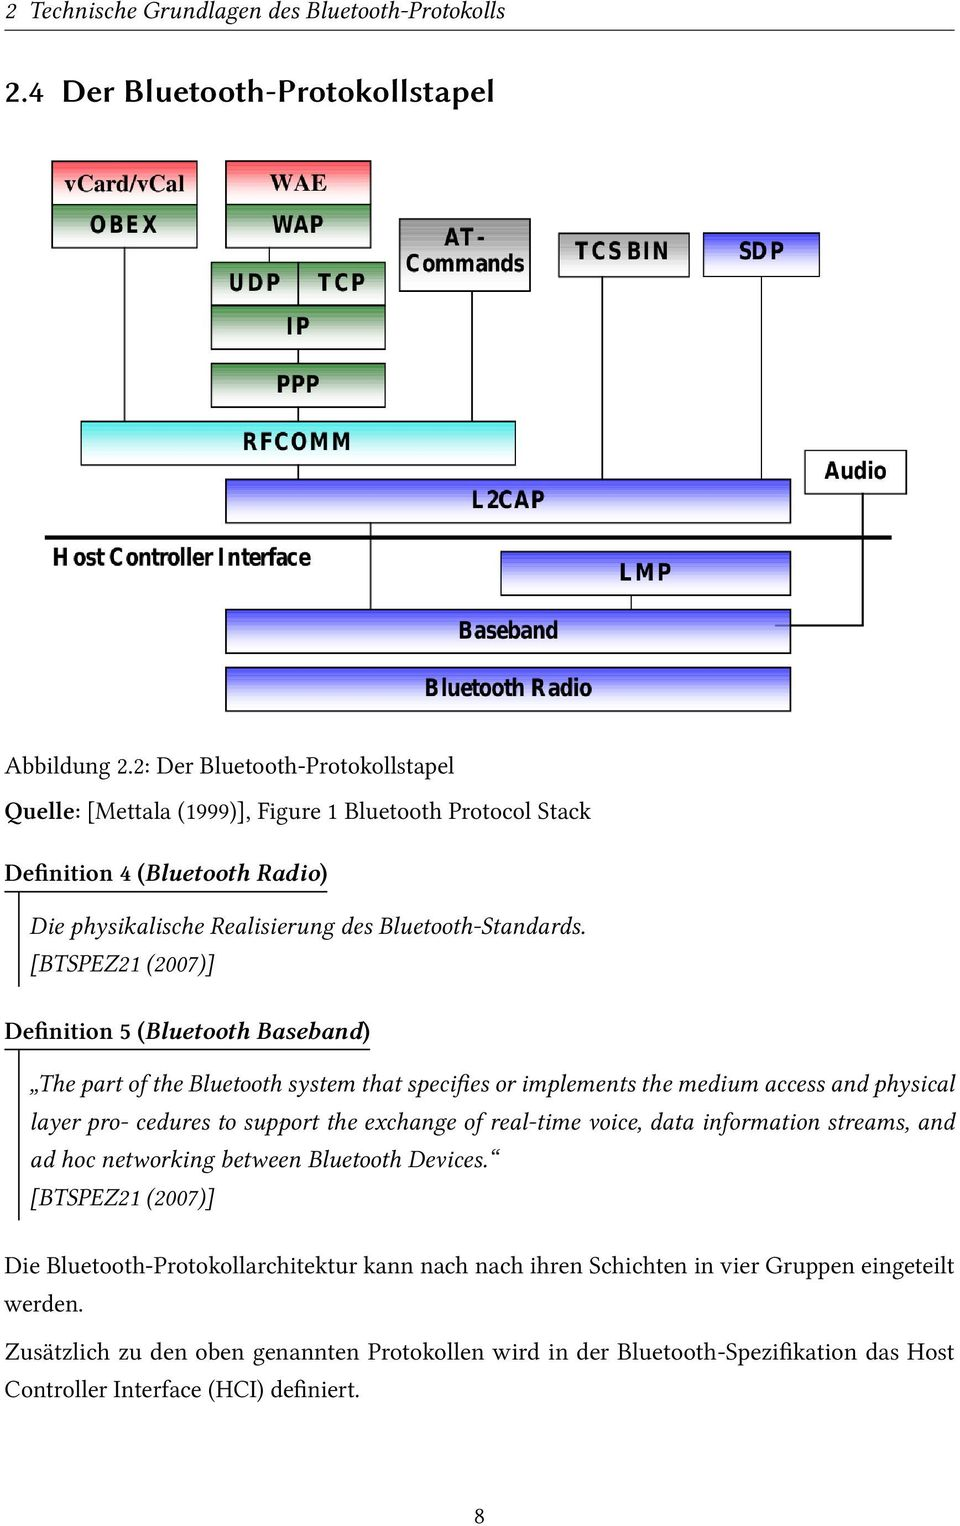 [BTSPEZ21 (2007)] Definition 5 (Bluetooth Baseband) The part of the Bluetooth system that specifies or implements the medium access and physical layer pro- cedures to support the exchange of